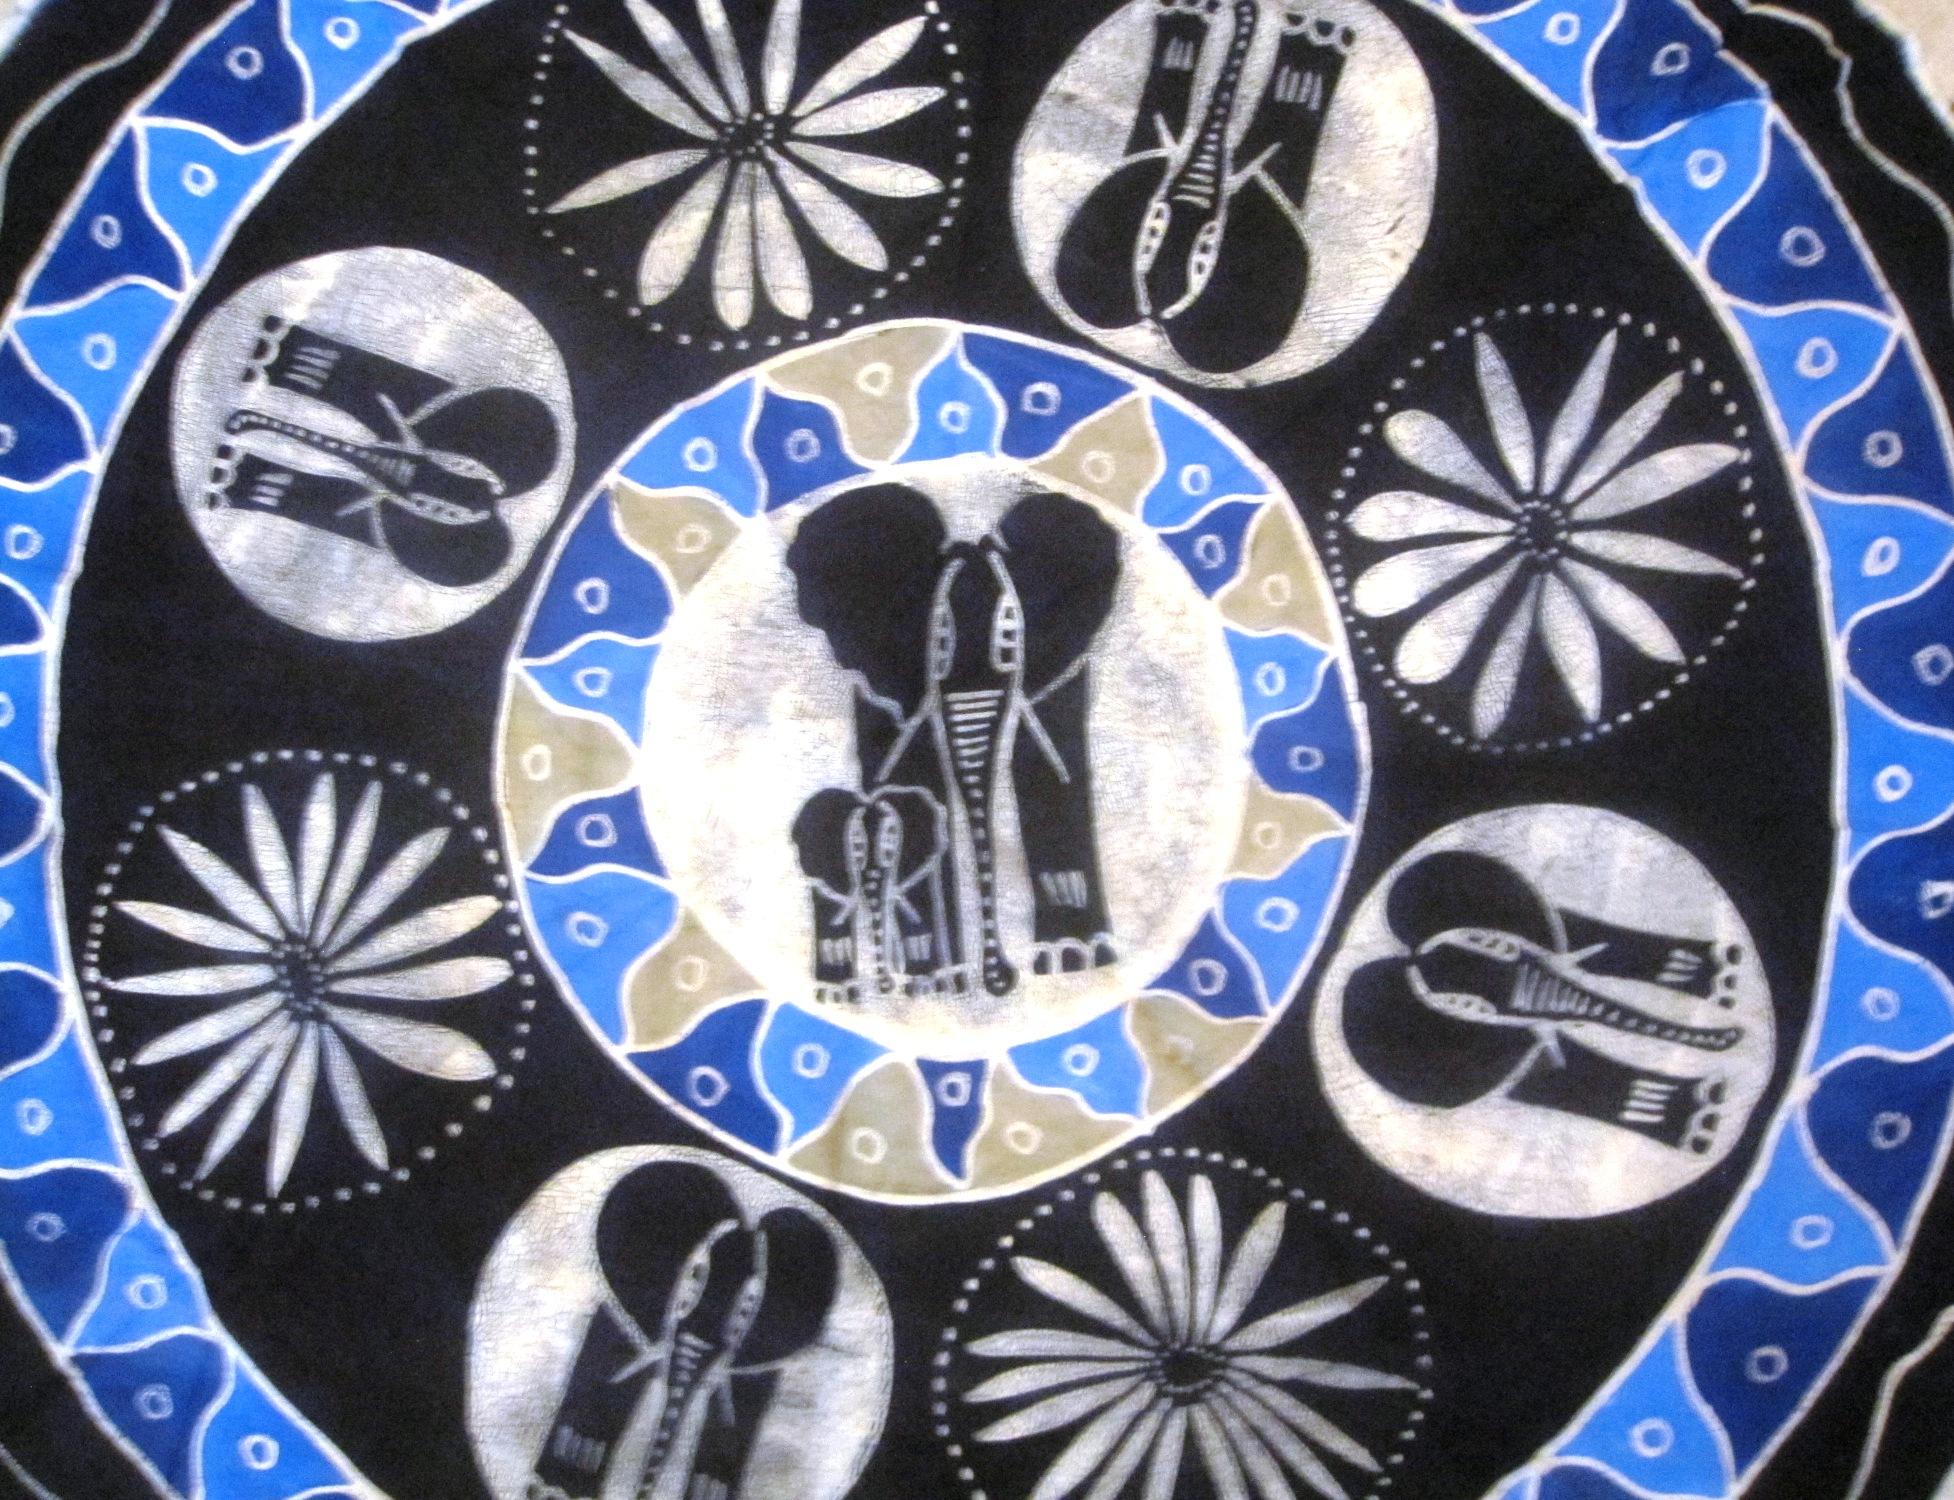 Round Batik Tablecloths from Zim